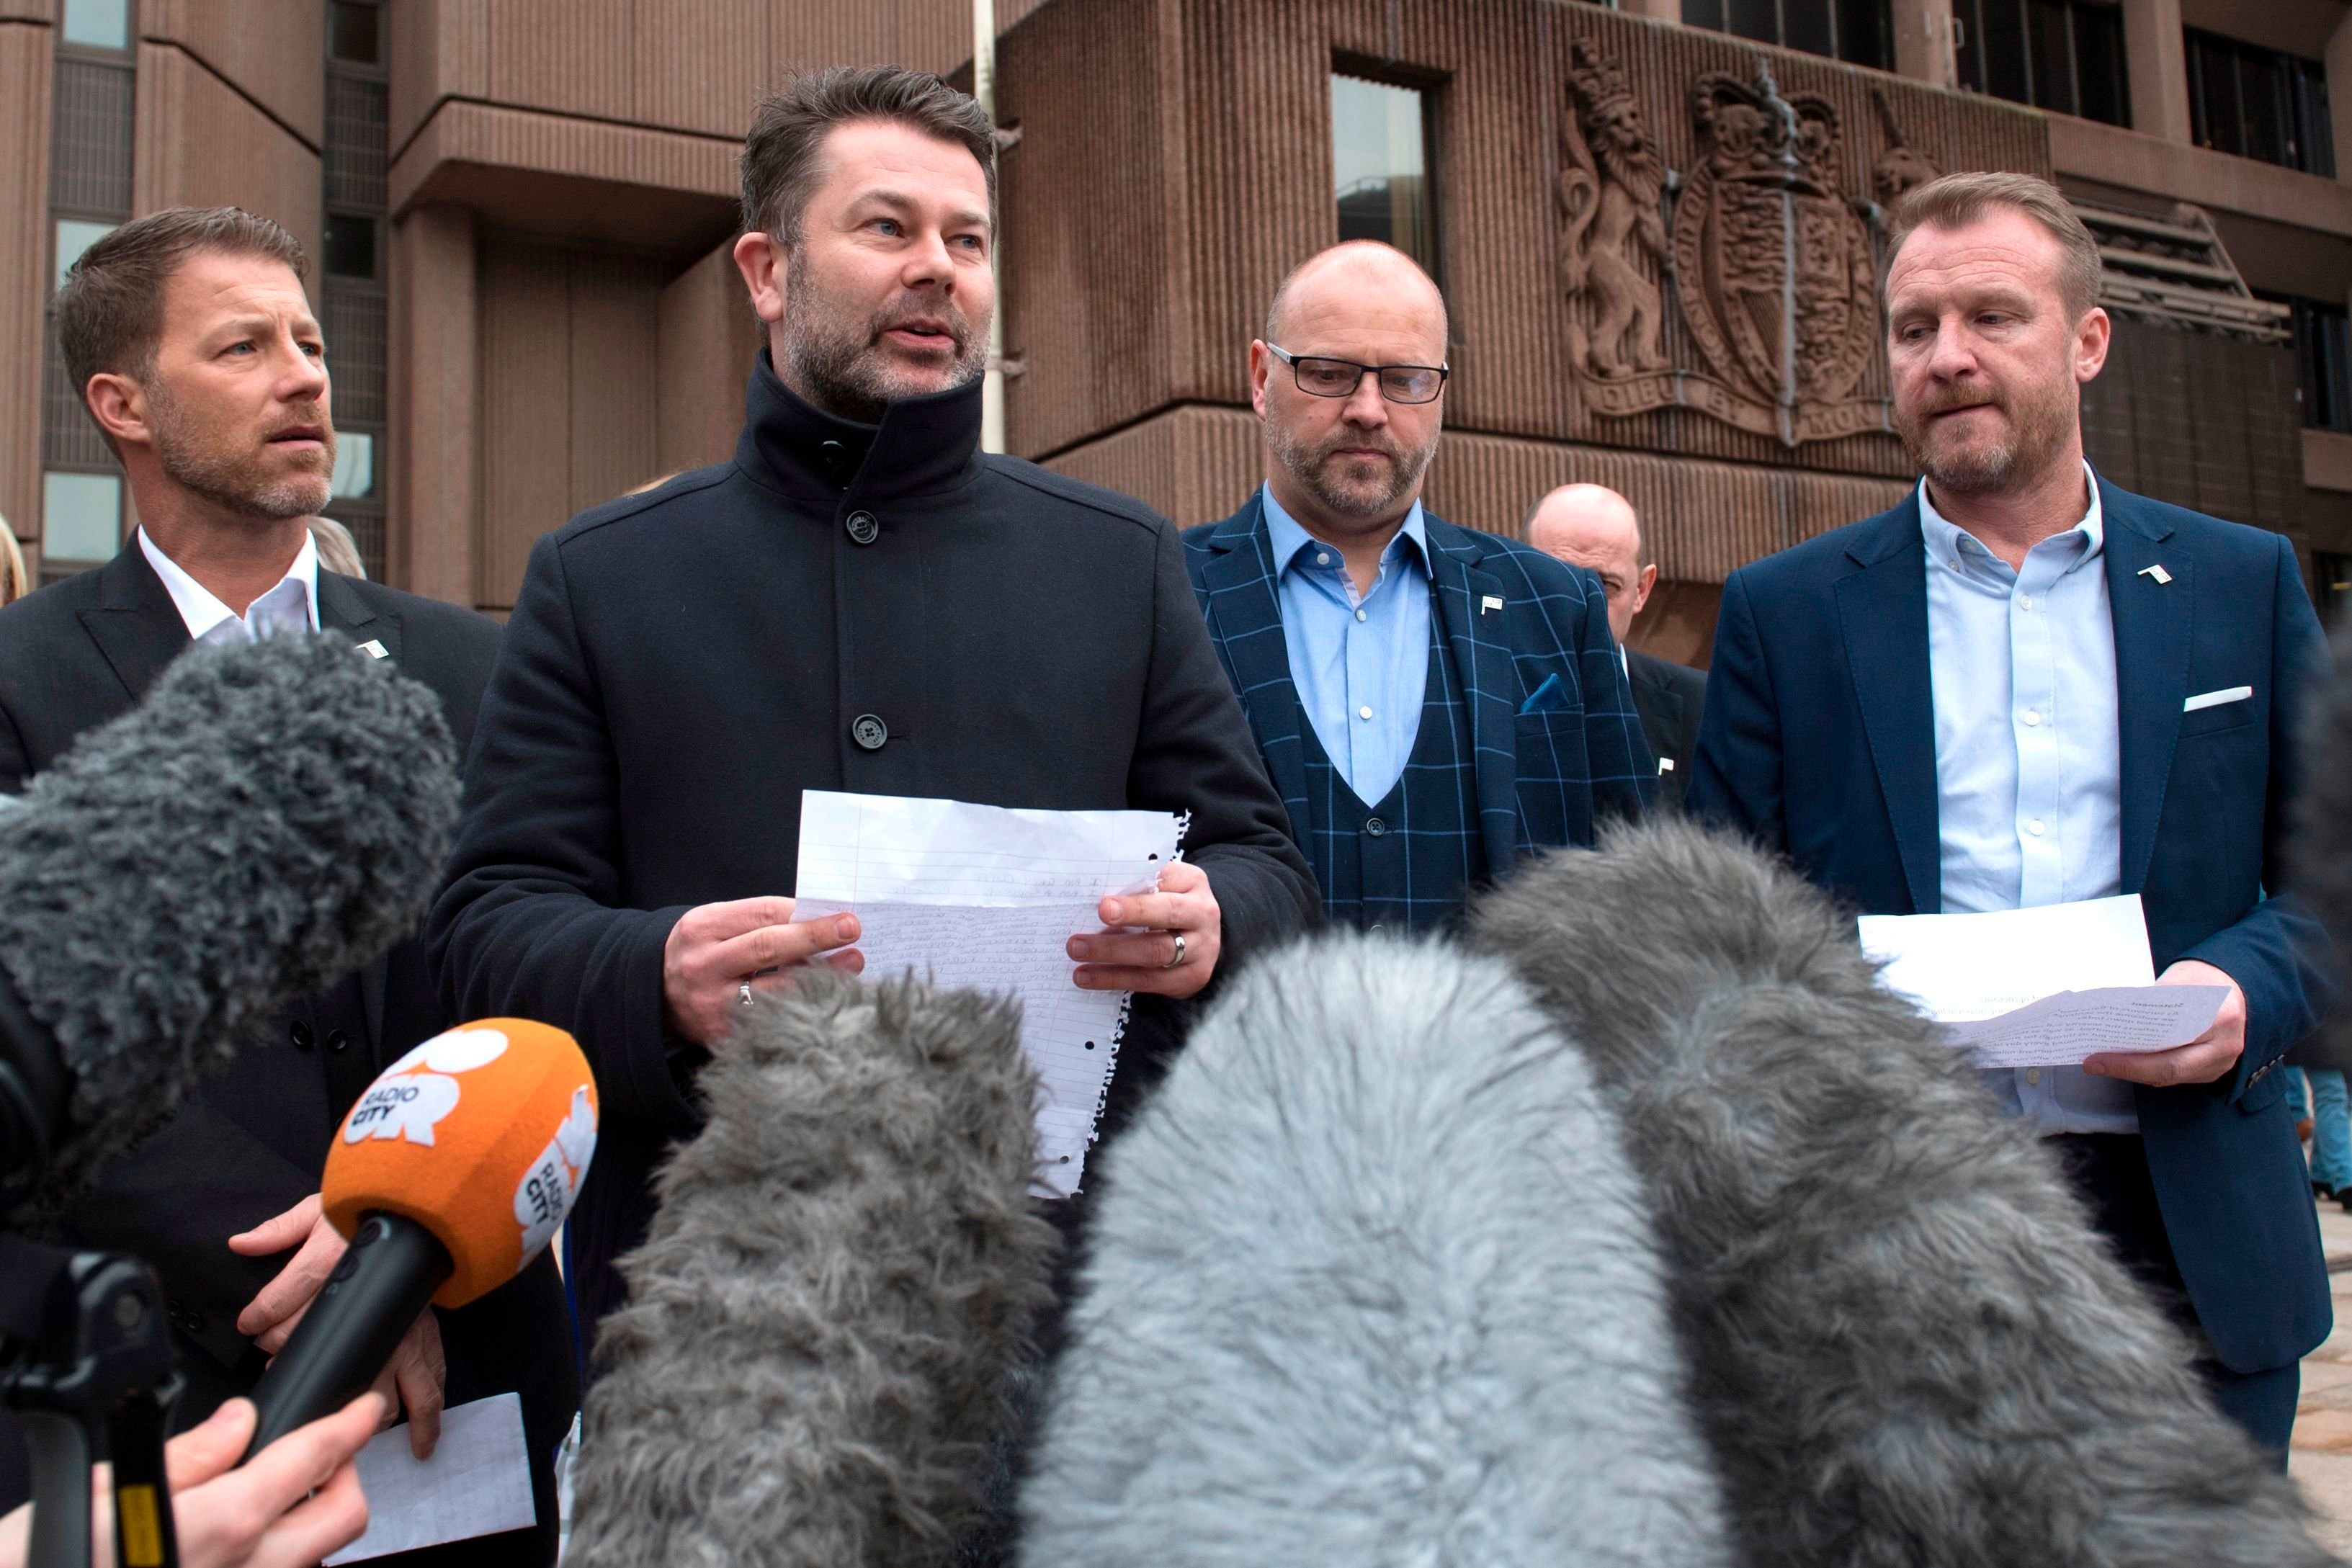 <strong>Abuse survivors of former football coach Barry Bennell - Steve Walters, Gary Cliffe, Chris Unsworth and Micky Fallon - speak outside Liverpool Crown Court.</strong>